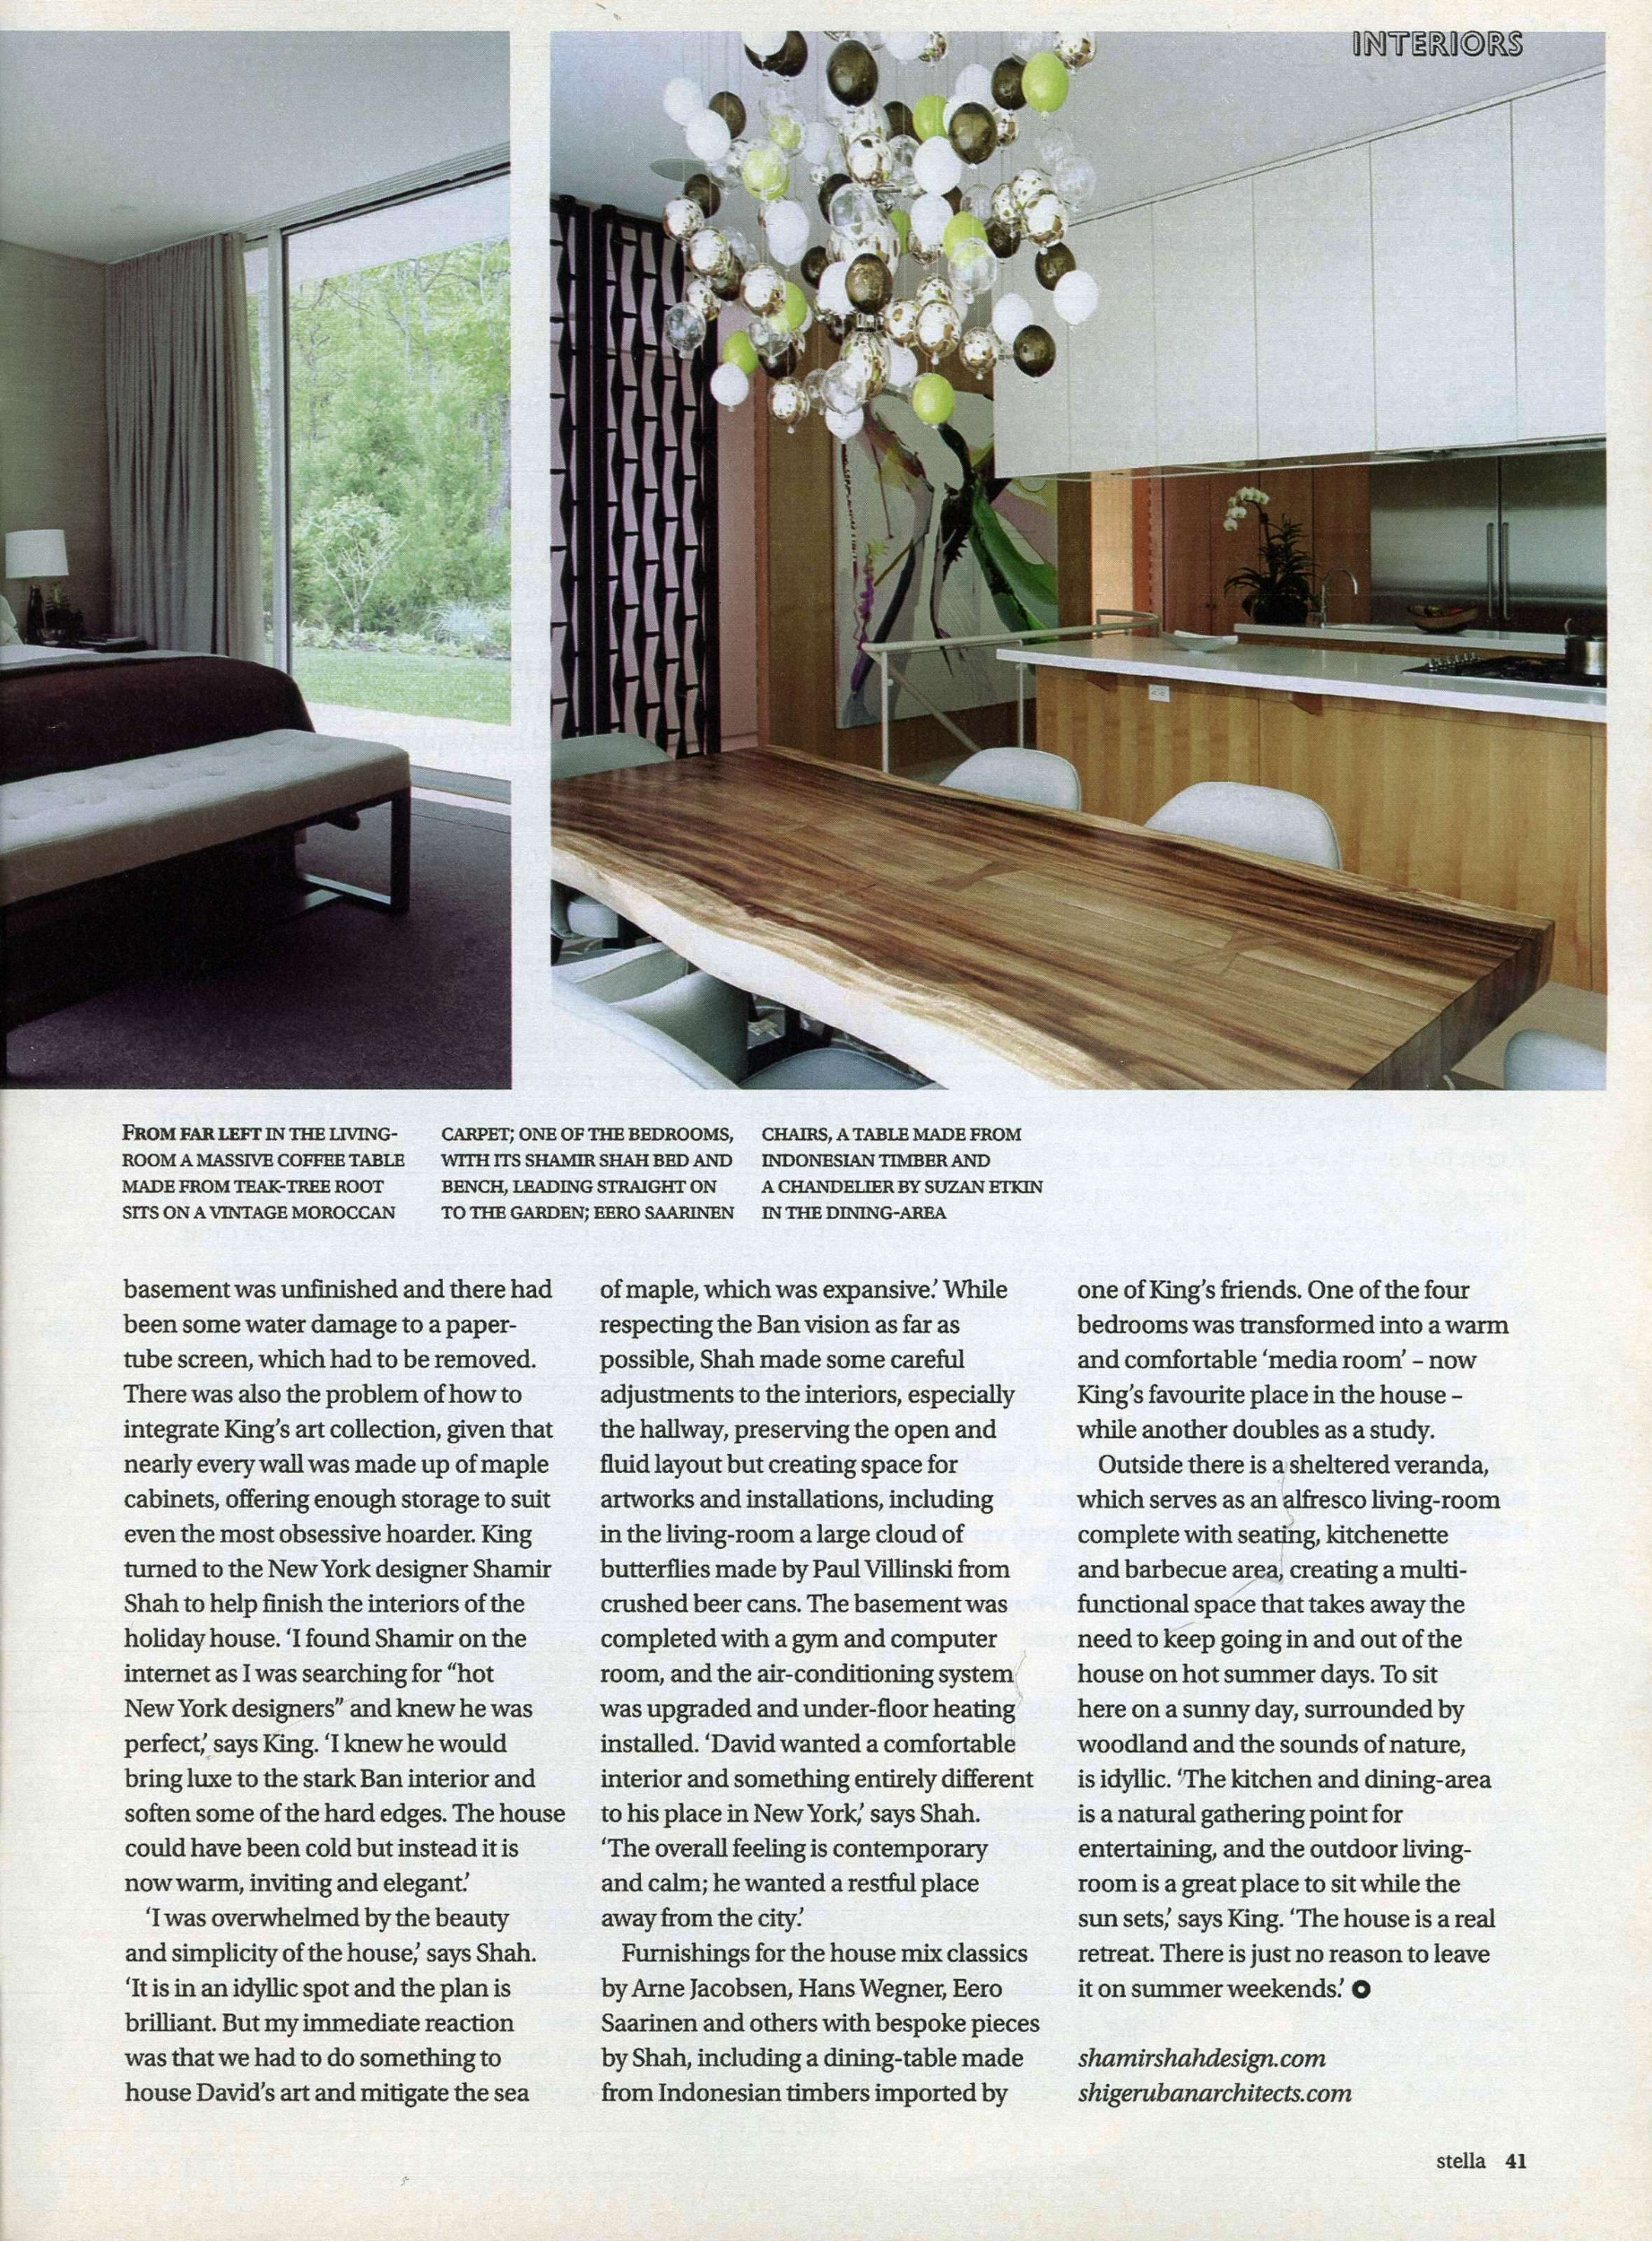 The Sunday Telegraph_Feb 09_Hamptons House_Full Article_Page_5.jpg